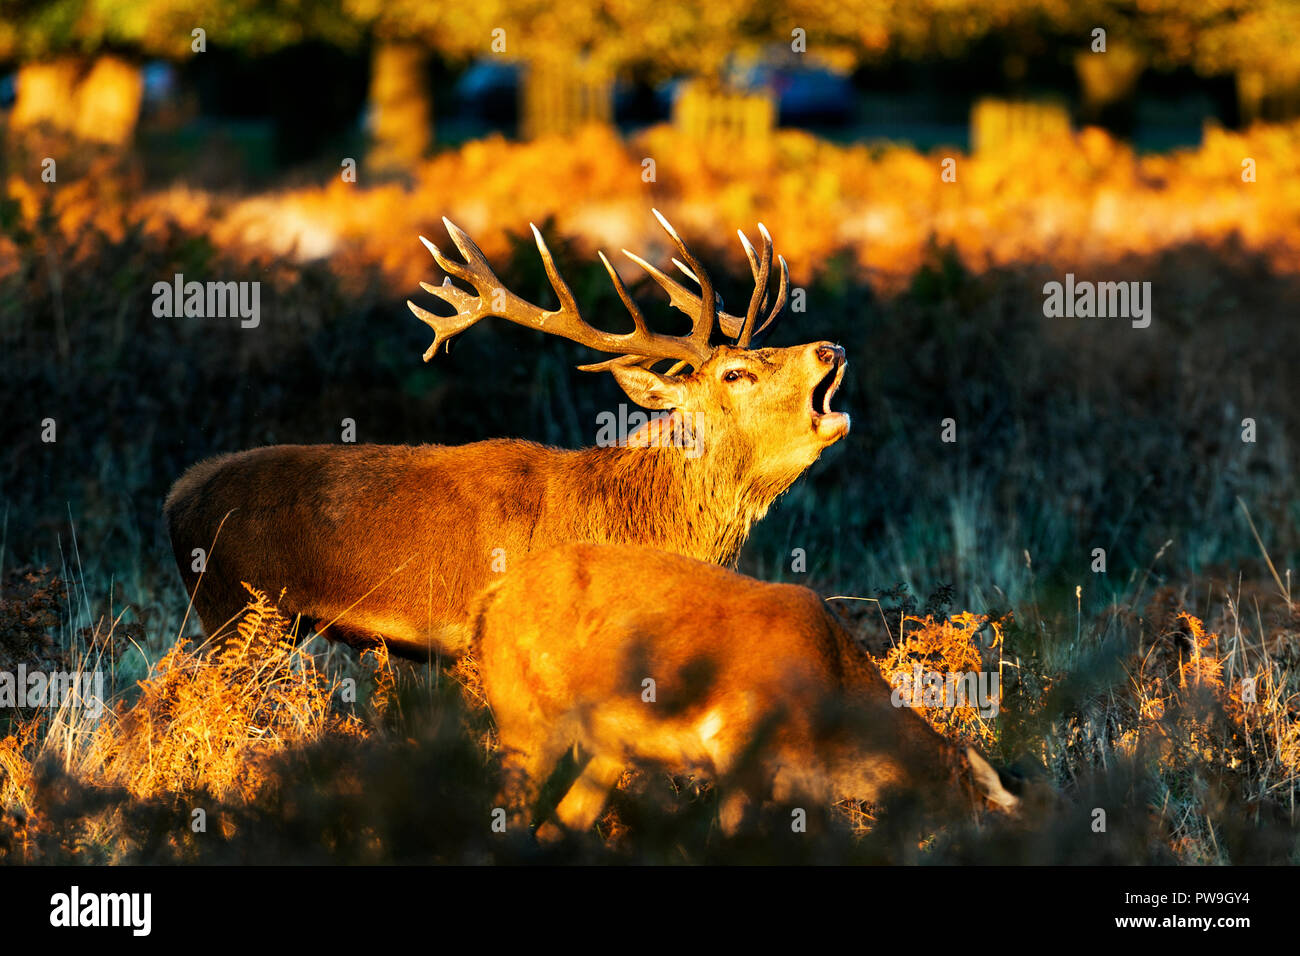 Red Deer during the autumn rut in the London parks - Stock Image